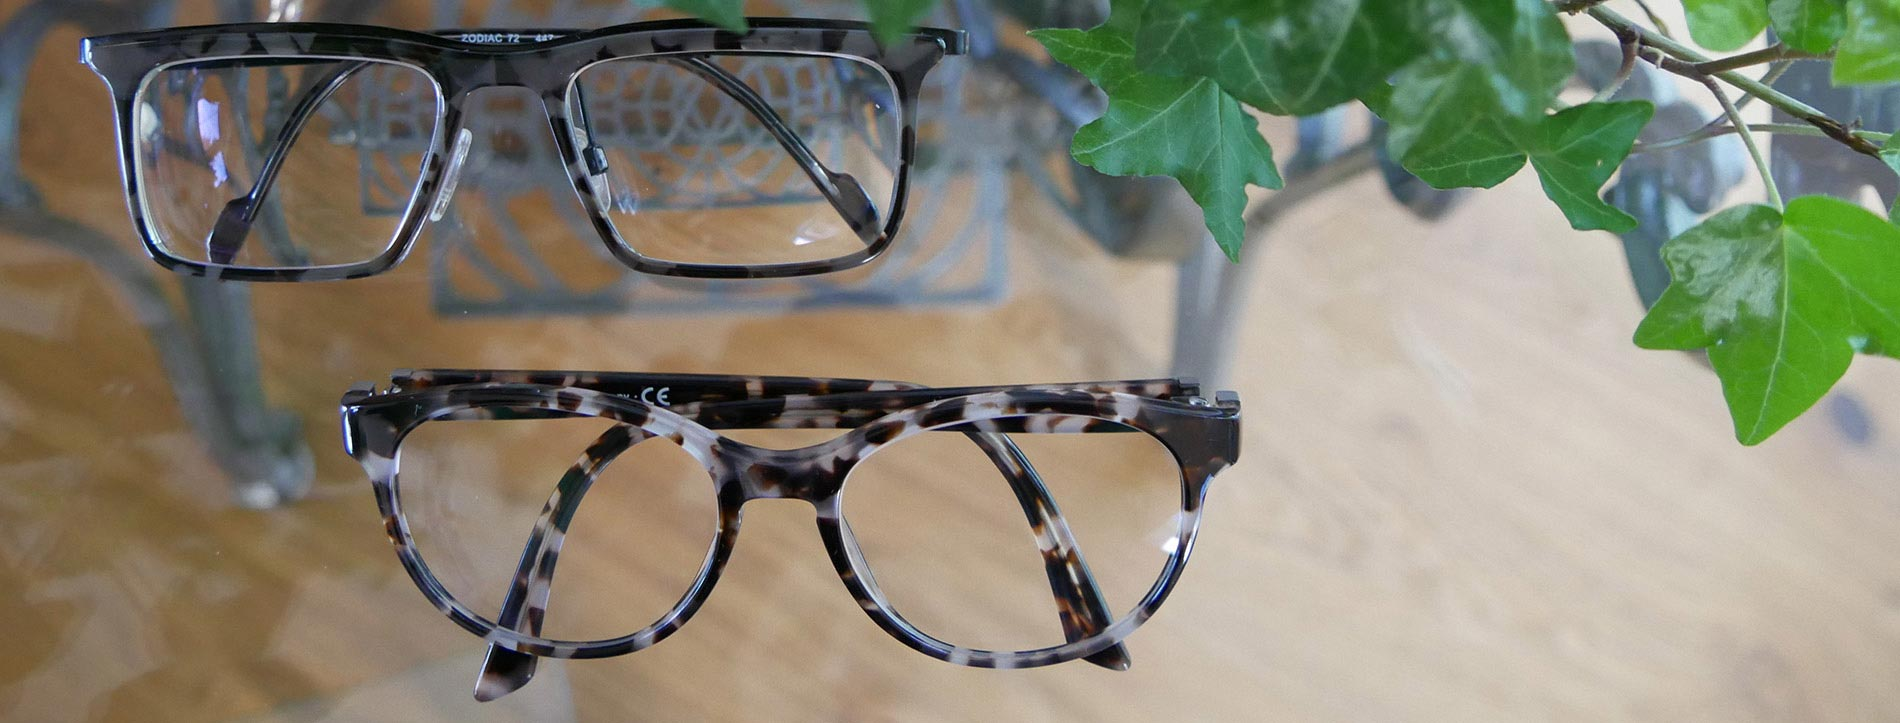 Damenbrille Optiker Cham